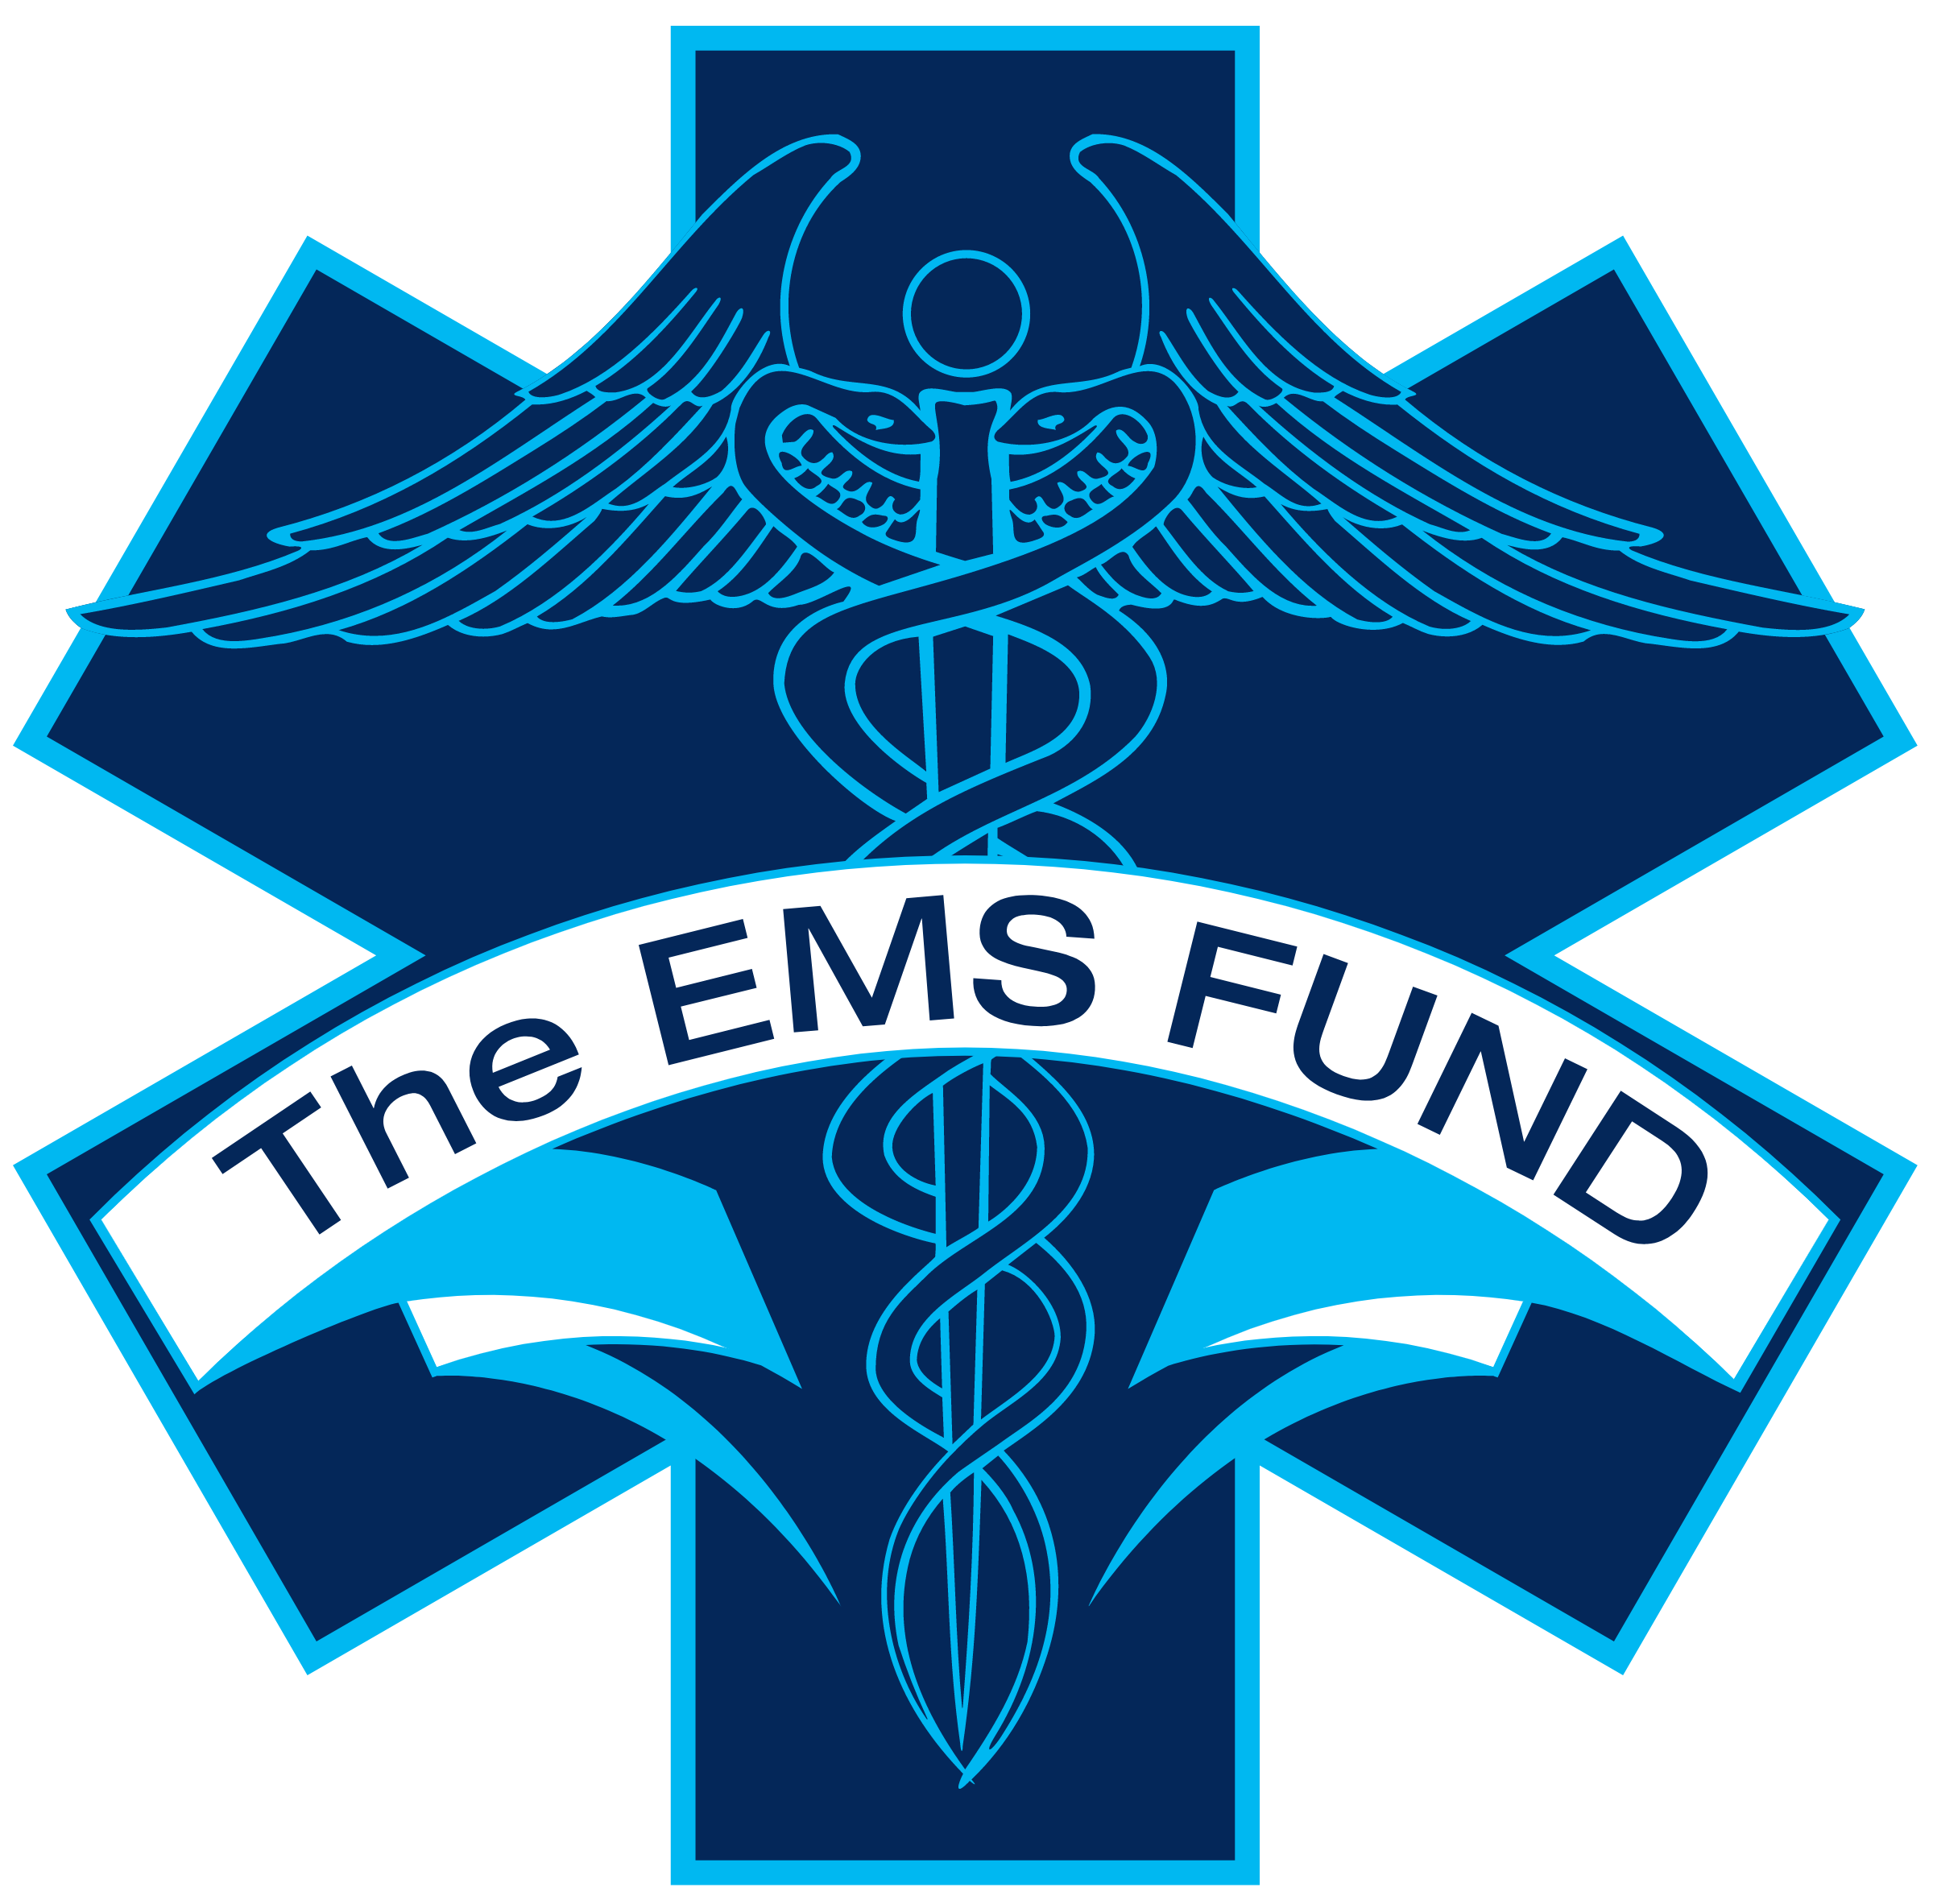 The EMS Fund